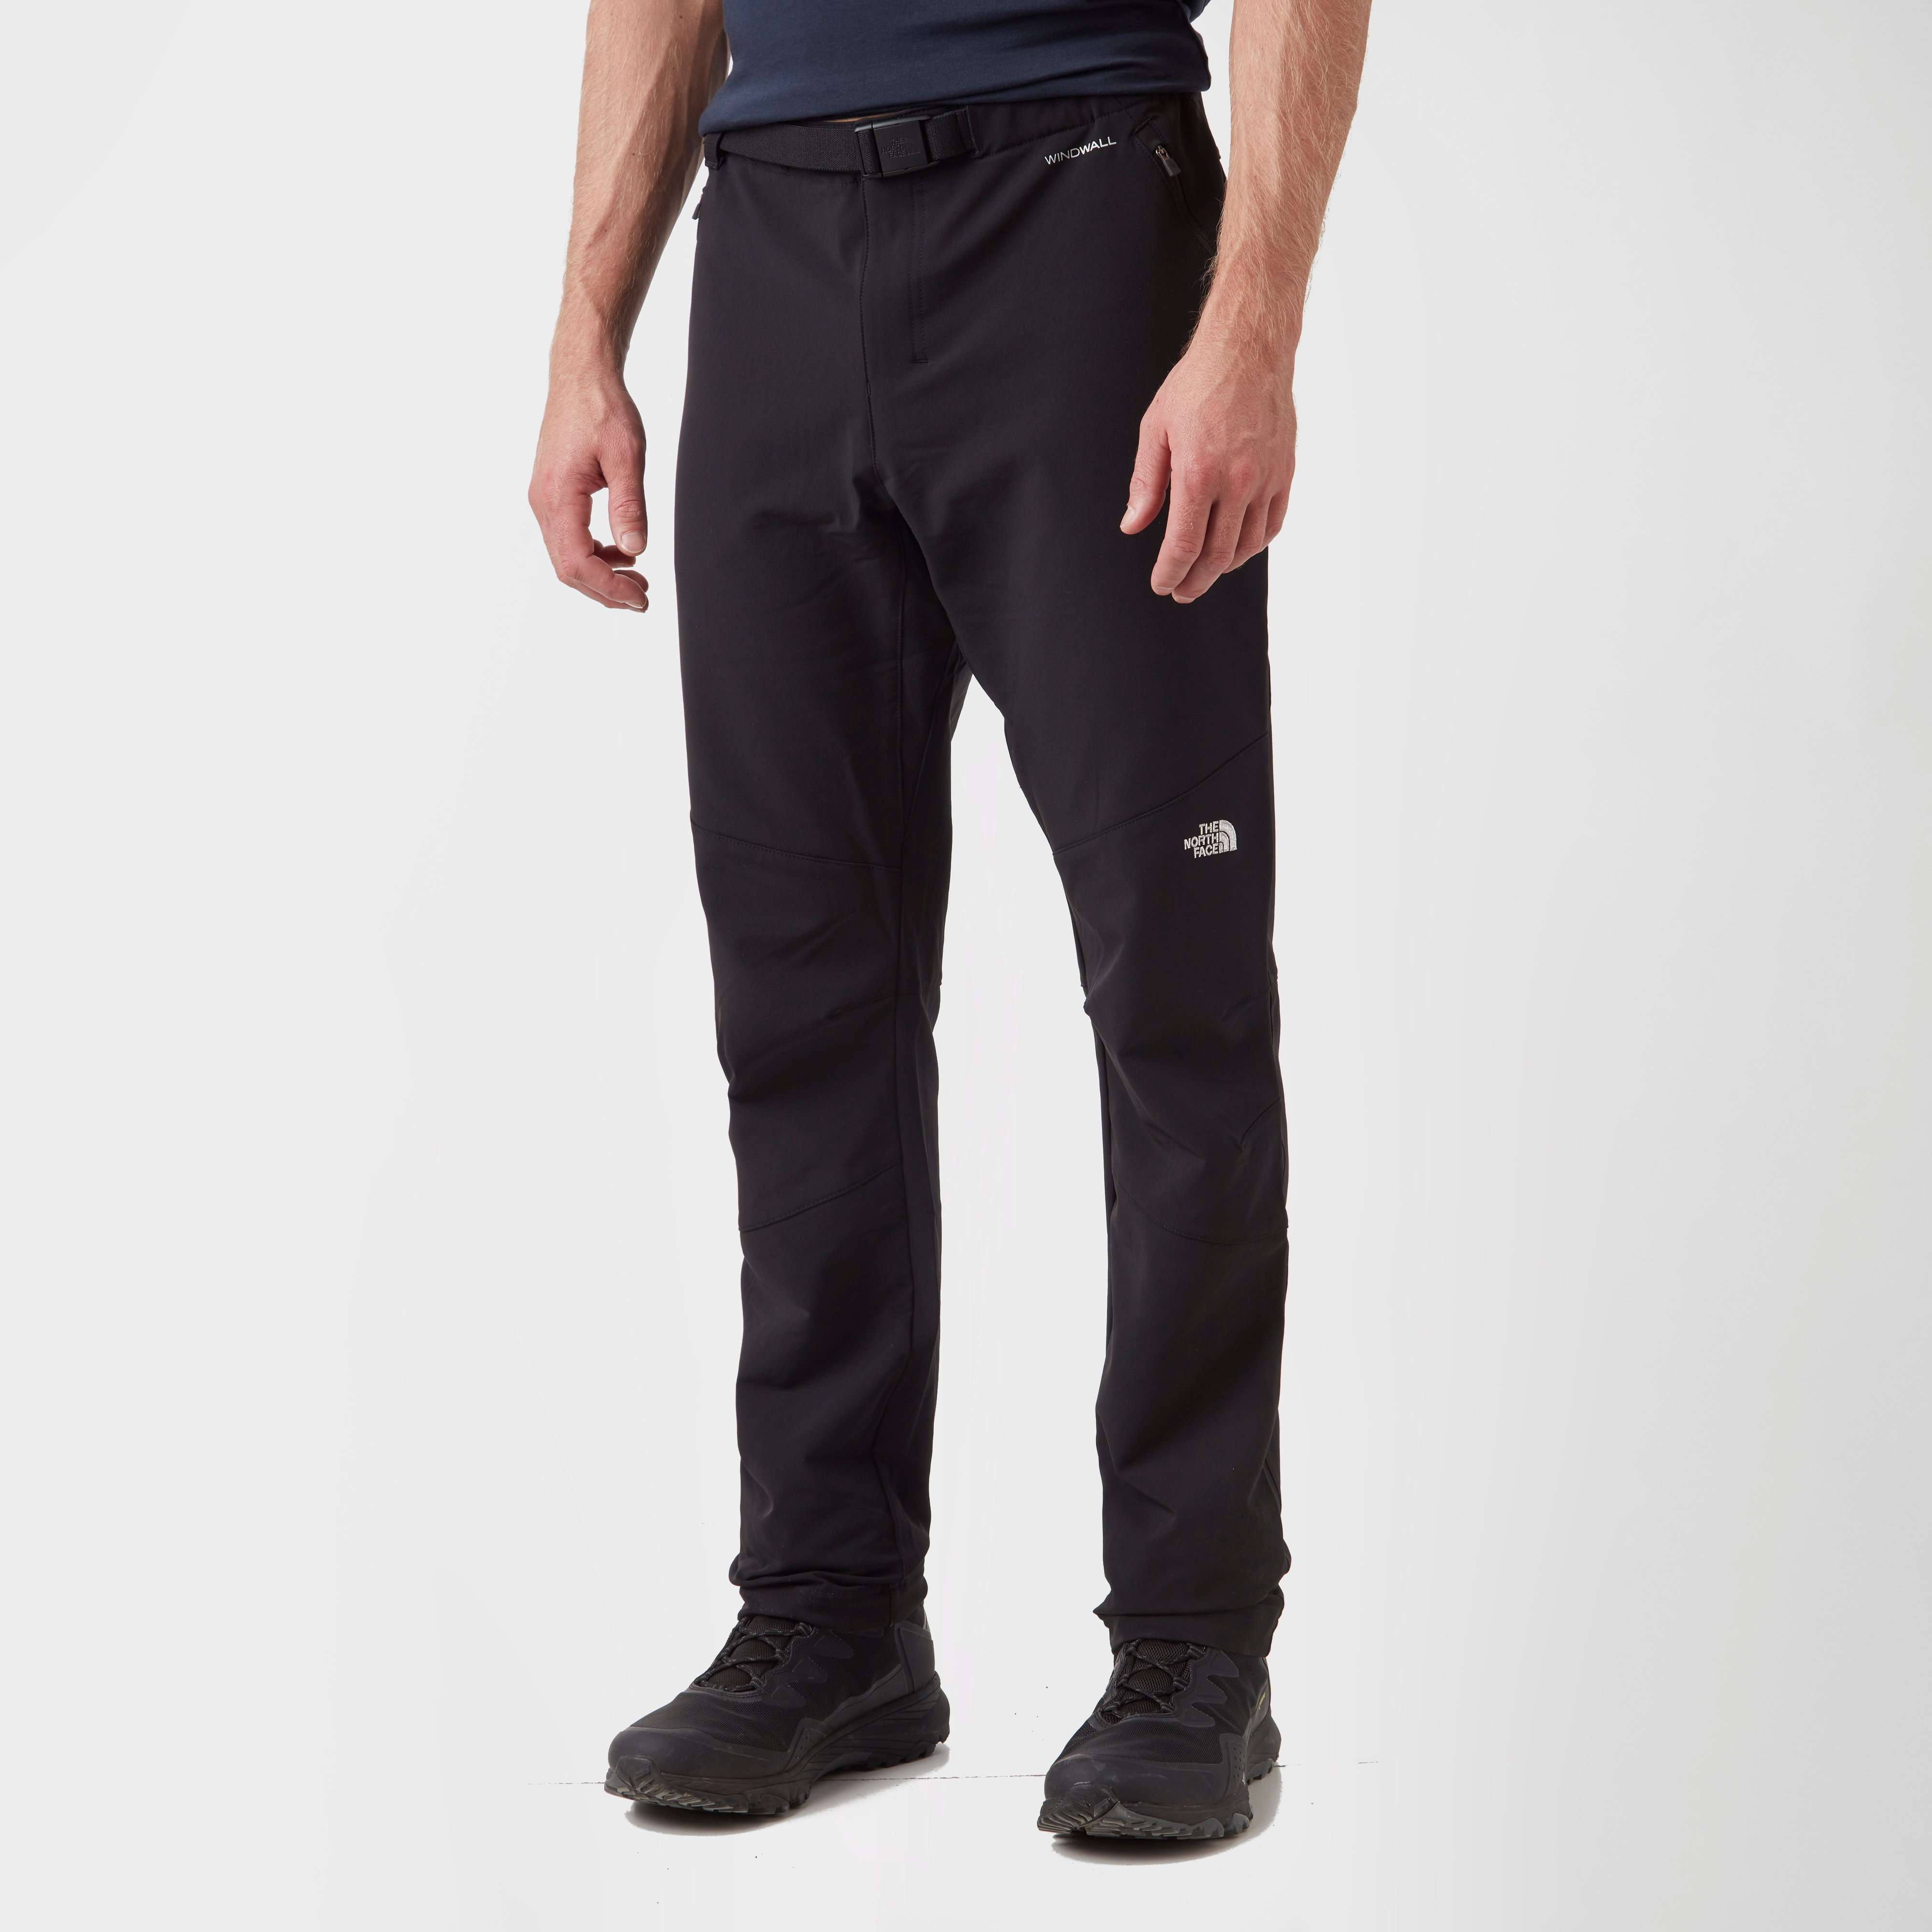 THE NORTH FACE Men's Diablo Hiking Trousers